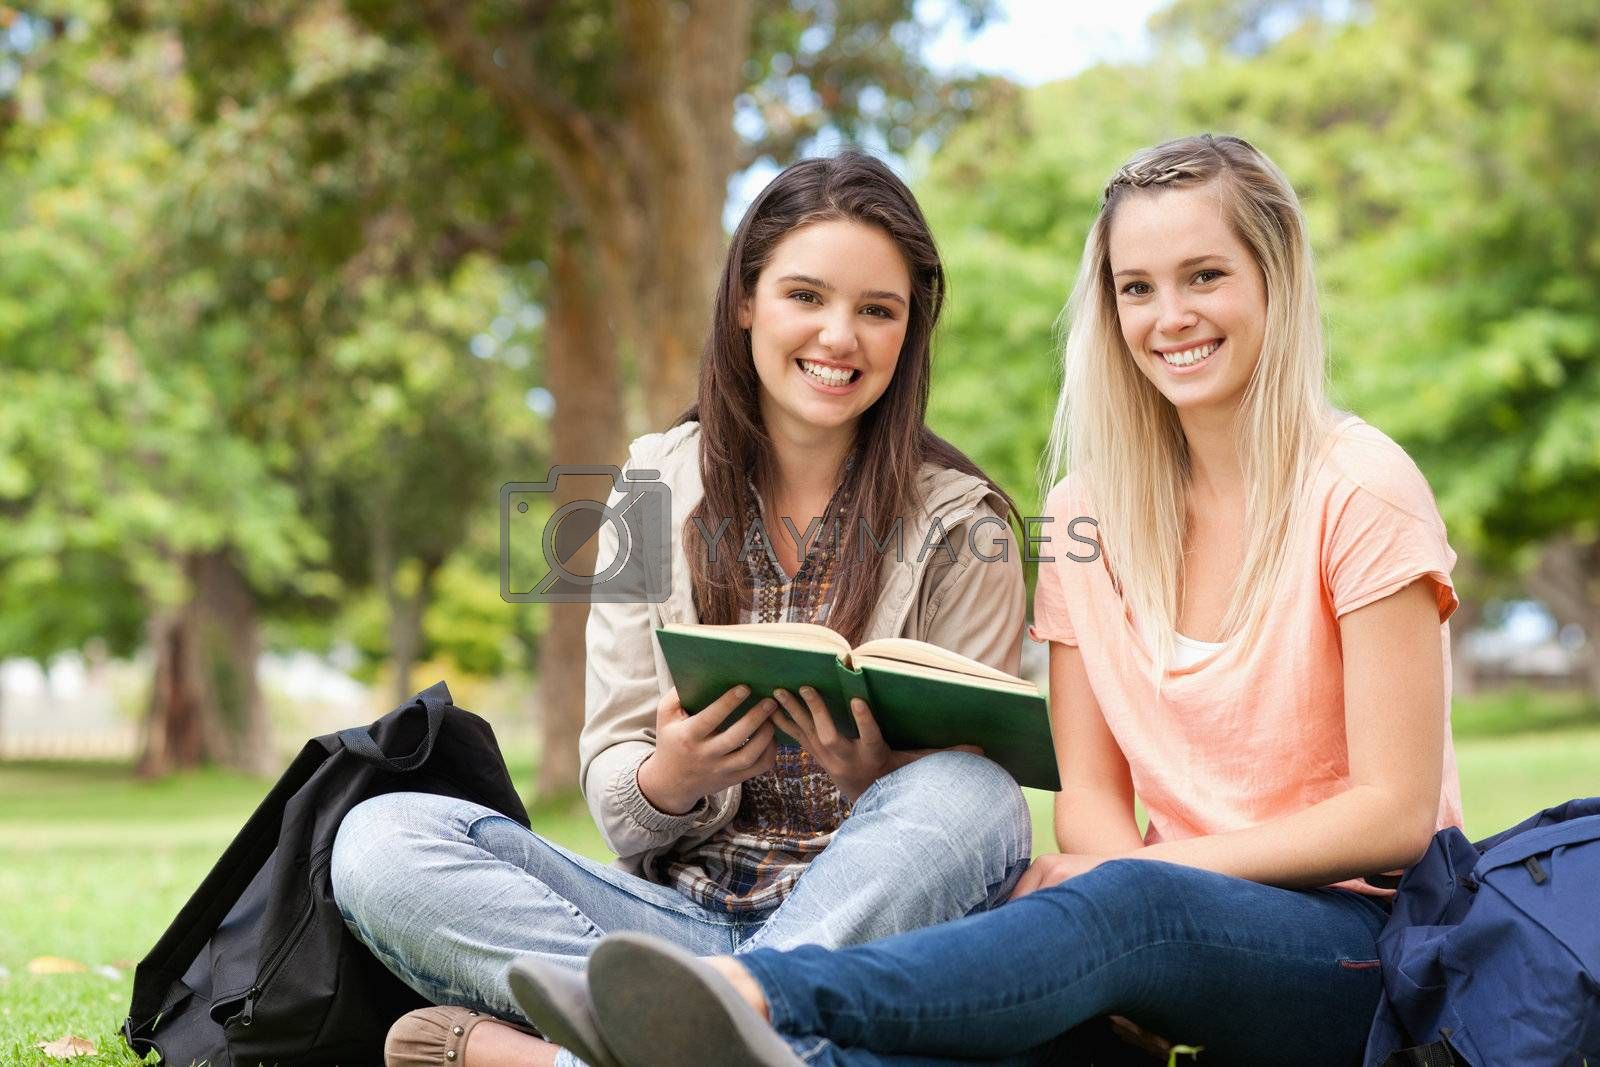 Smiling teenagers sitting while studying with a textbook in a park